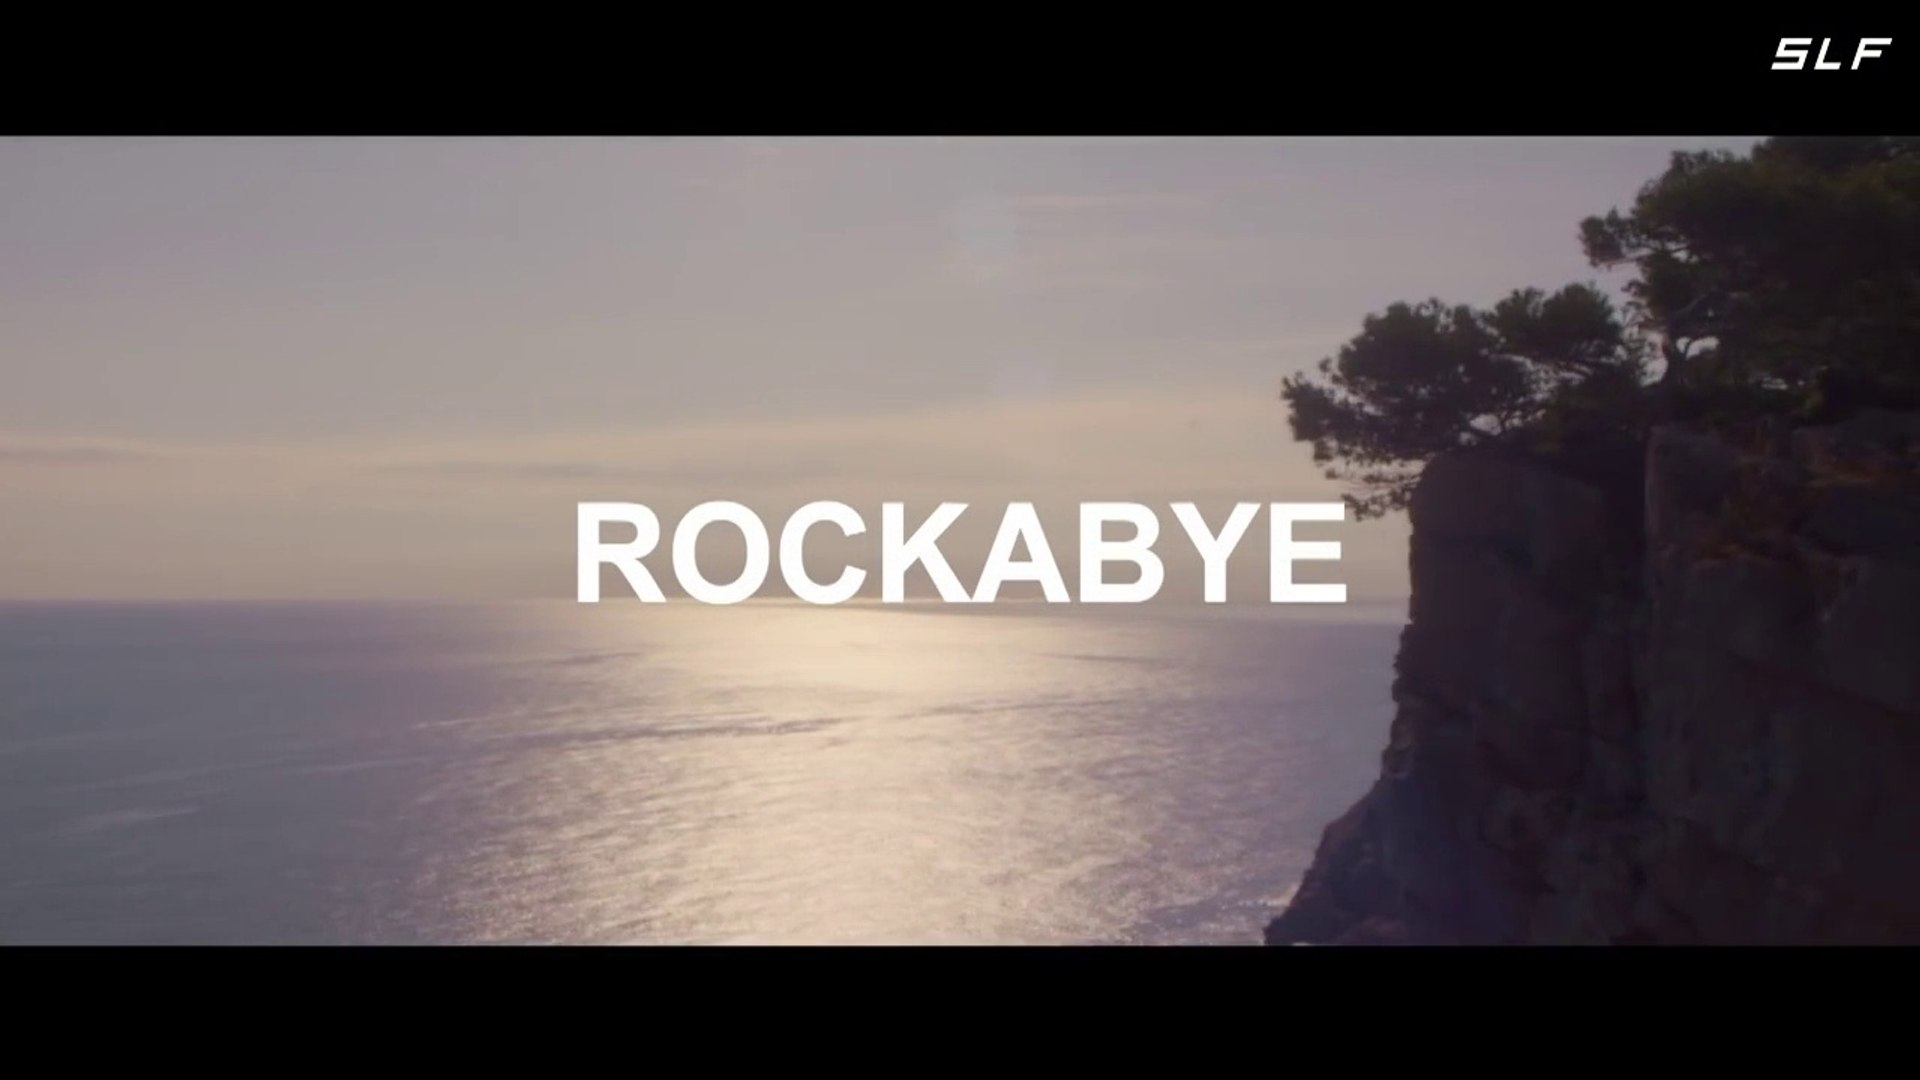 Clean Bandit - Rockabye ft. Sean Paul & Anne-Marie (dj Nev 2016) .SLF video remix